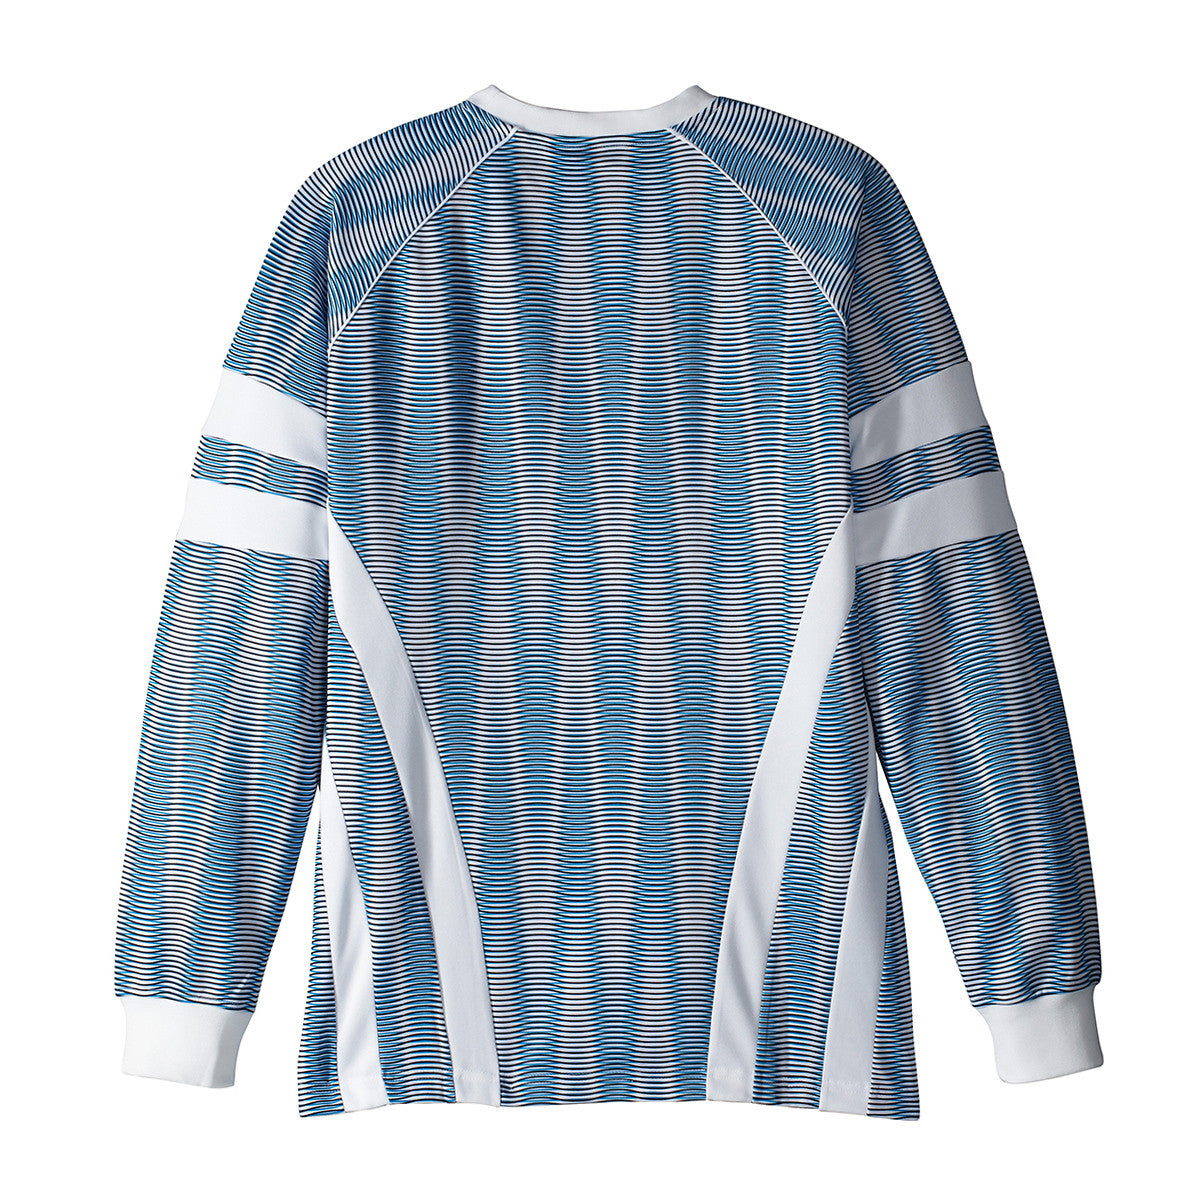 Adidas x Palace Graphic Goalie Shirt - Bold Aqua / White